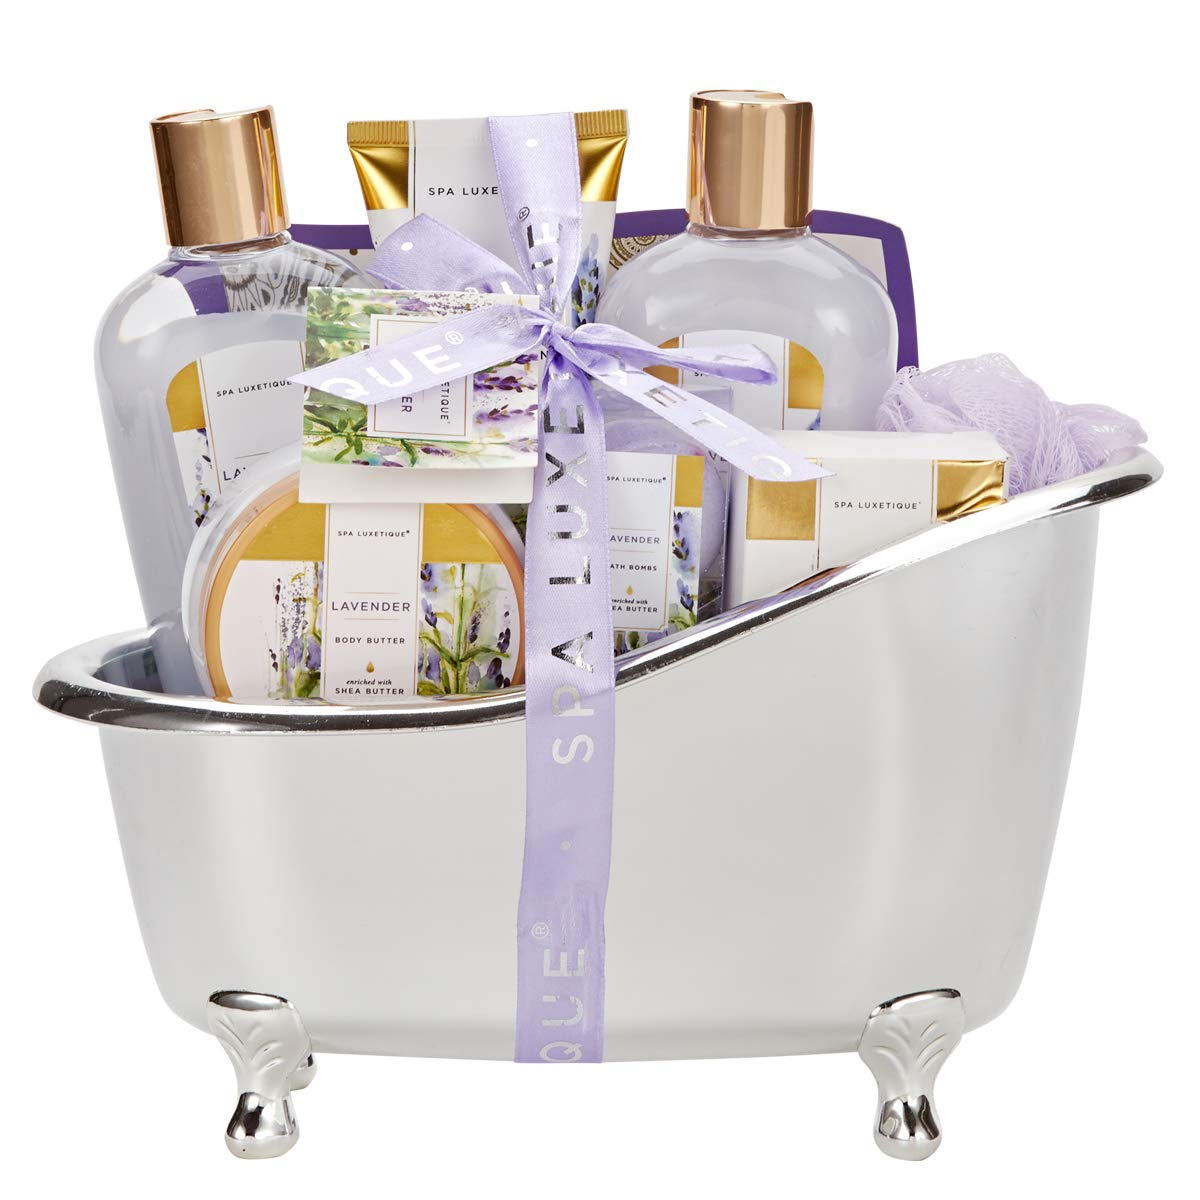 Spa Luxetique Spa Gift Basket Lavender Fragrance, Luxurious 8pc Gift Baskets for Women, Cute Bath Tub Holder - Best Holiday Gift Set for Women Includes Shower Gel, Bubble Bath, Body Butter & More. by spa luxetique